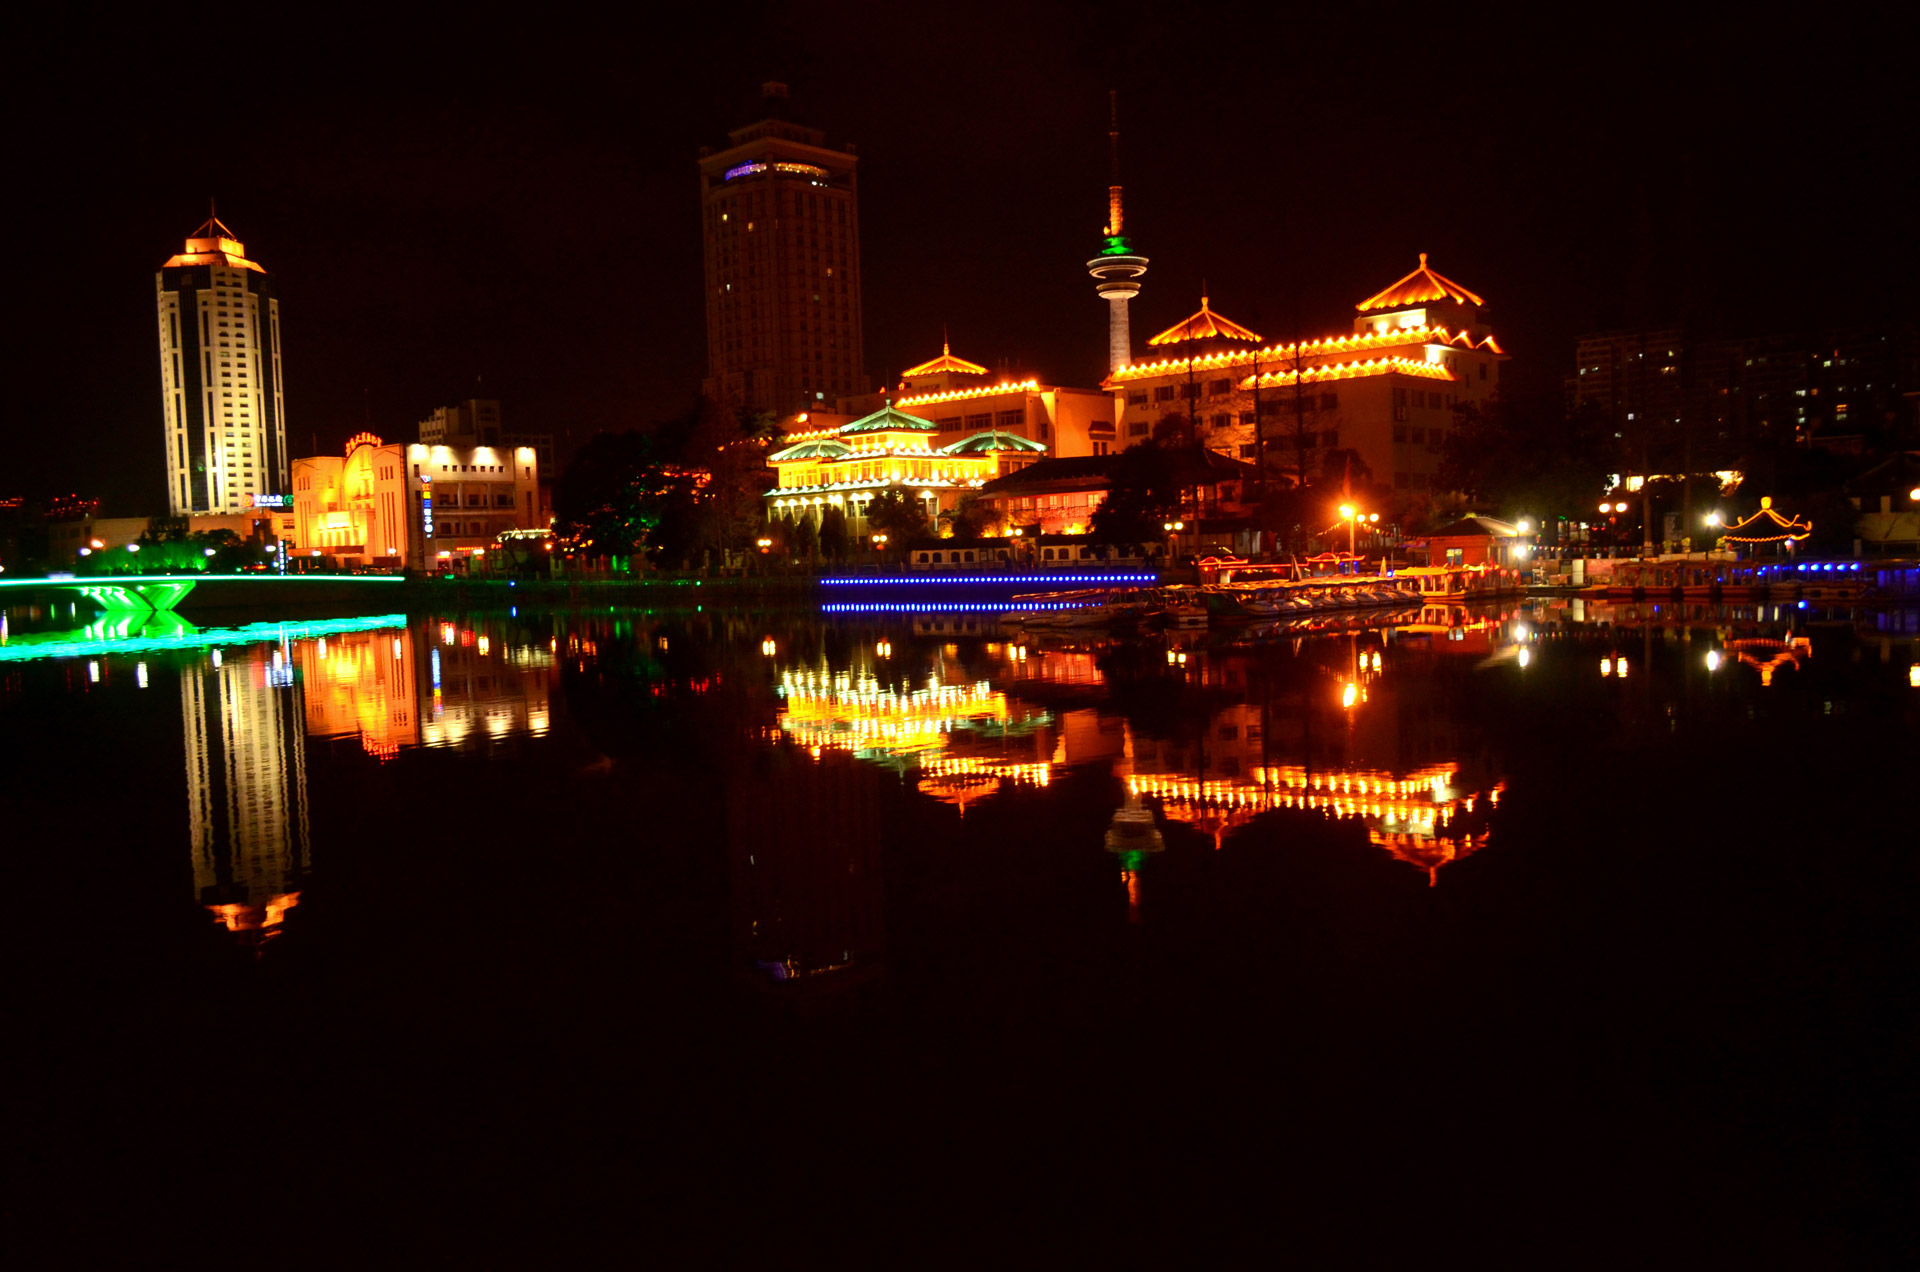 Night Lights, City Lights, Nantong